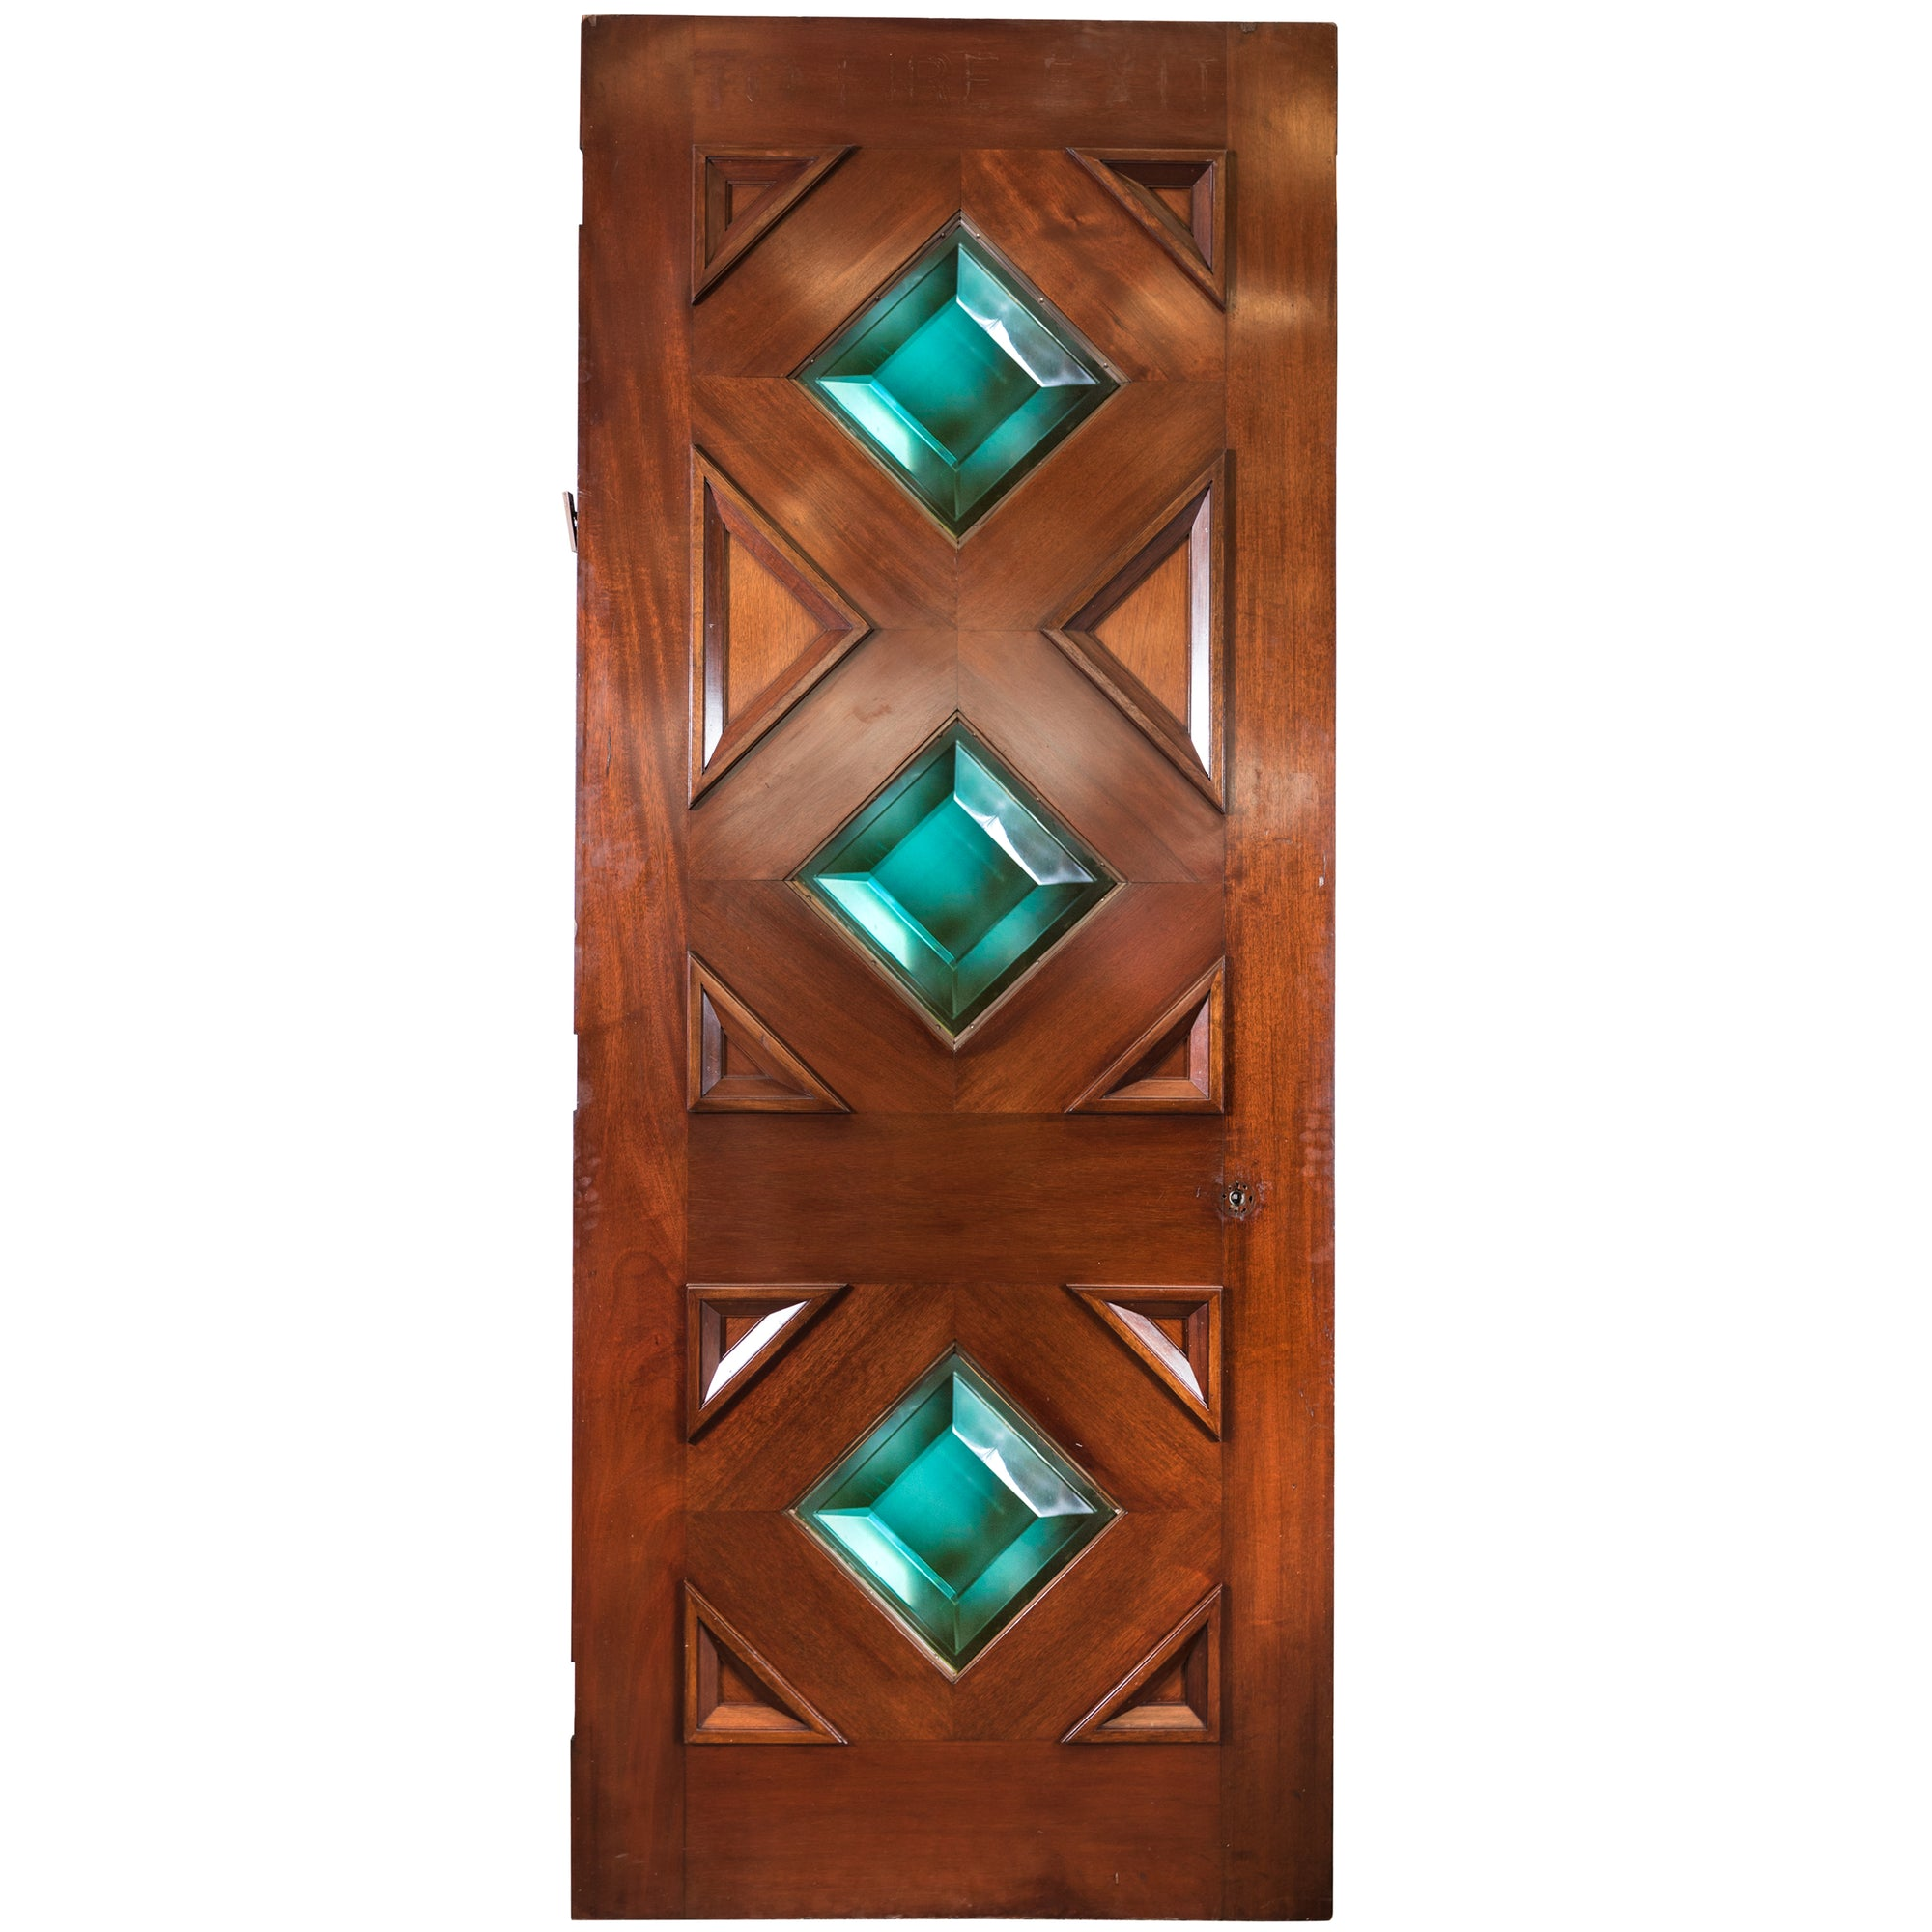 Reclaimed Solid Mahogany Door with Diamond Glazing - architectural-forum